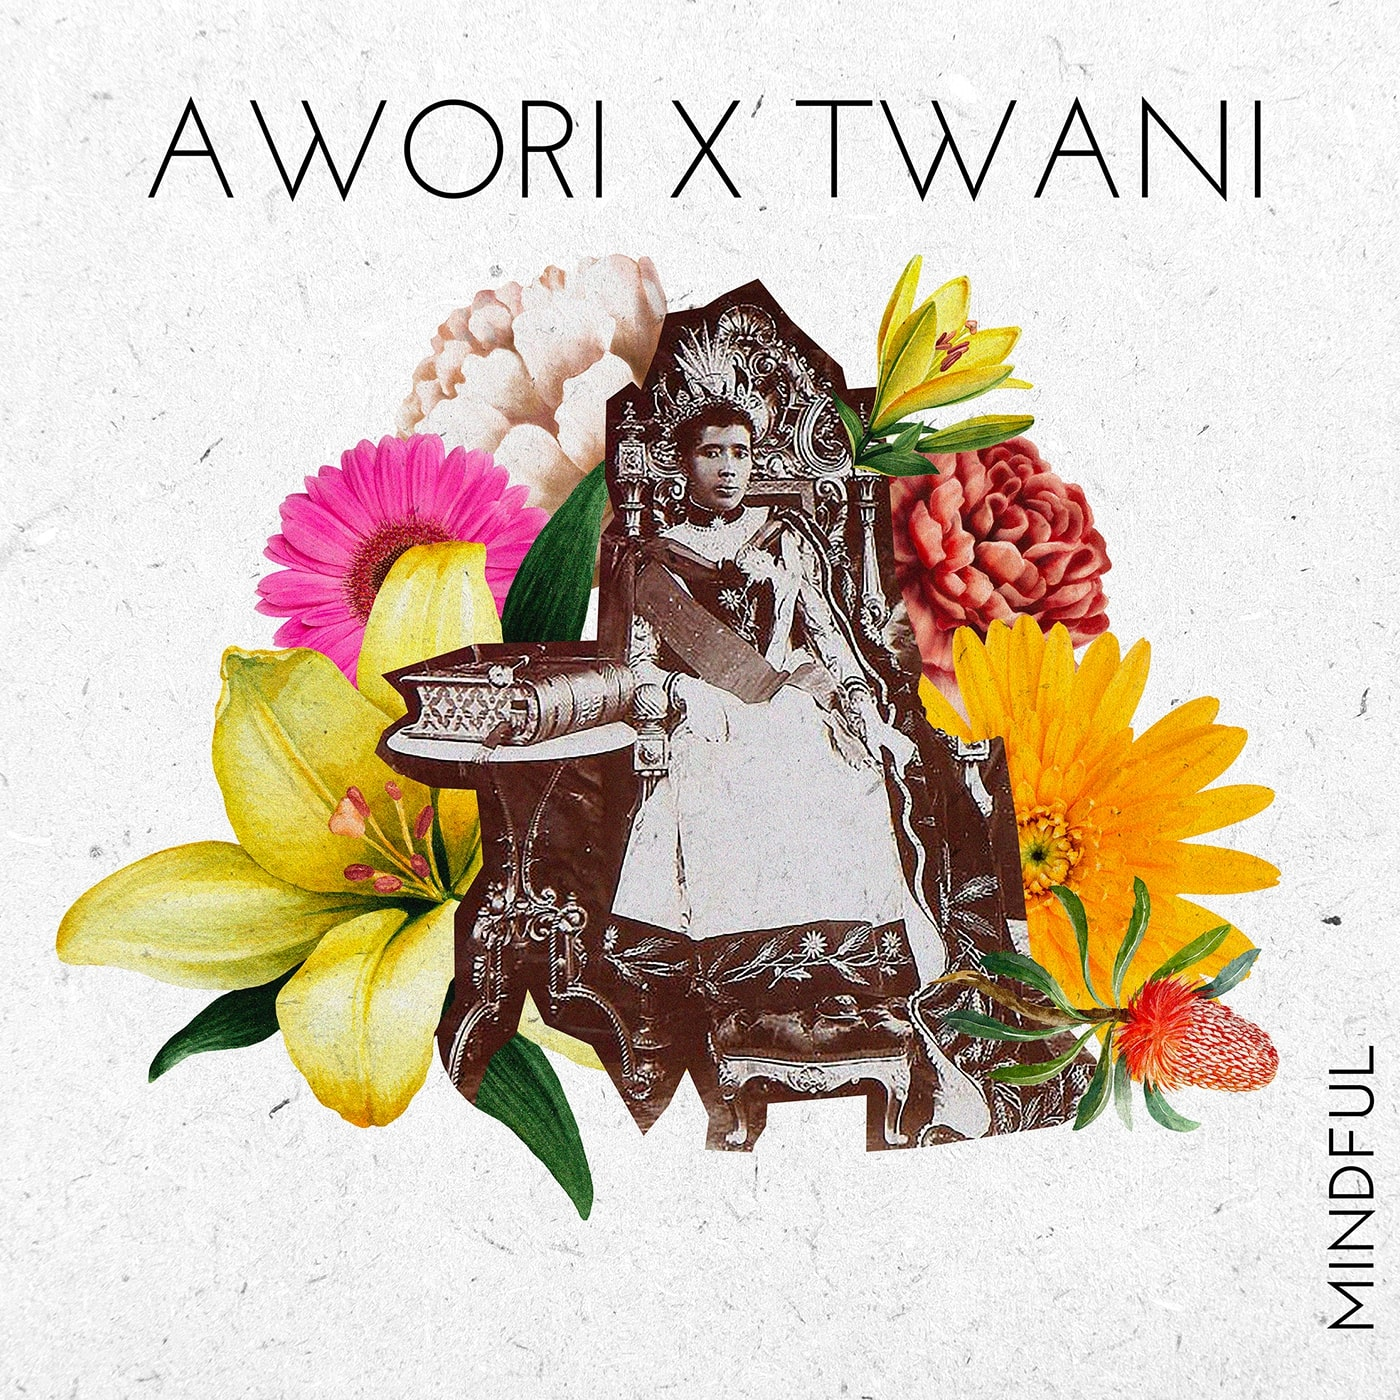 Awori; twani; mindful; artwork